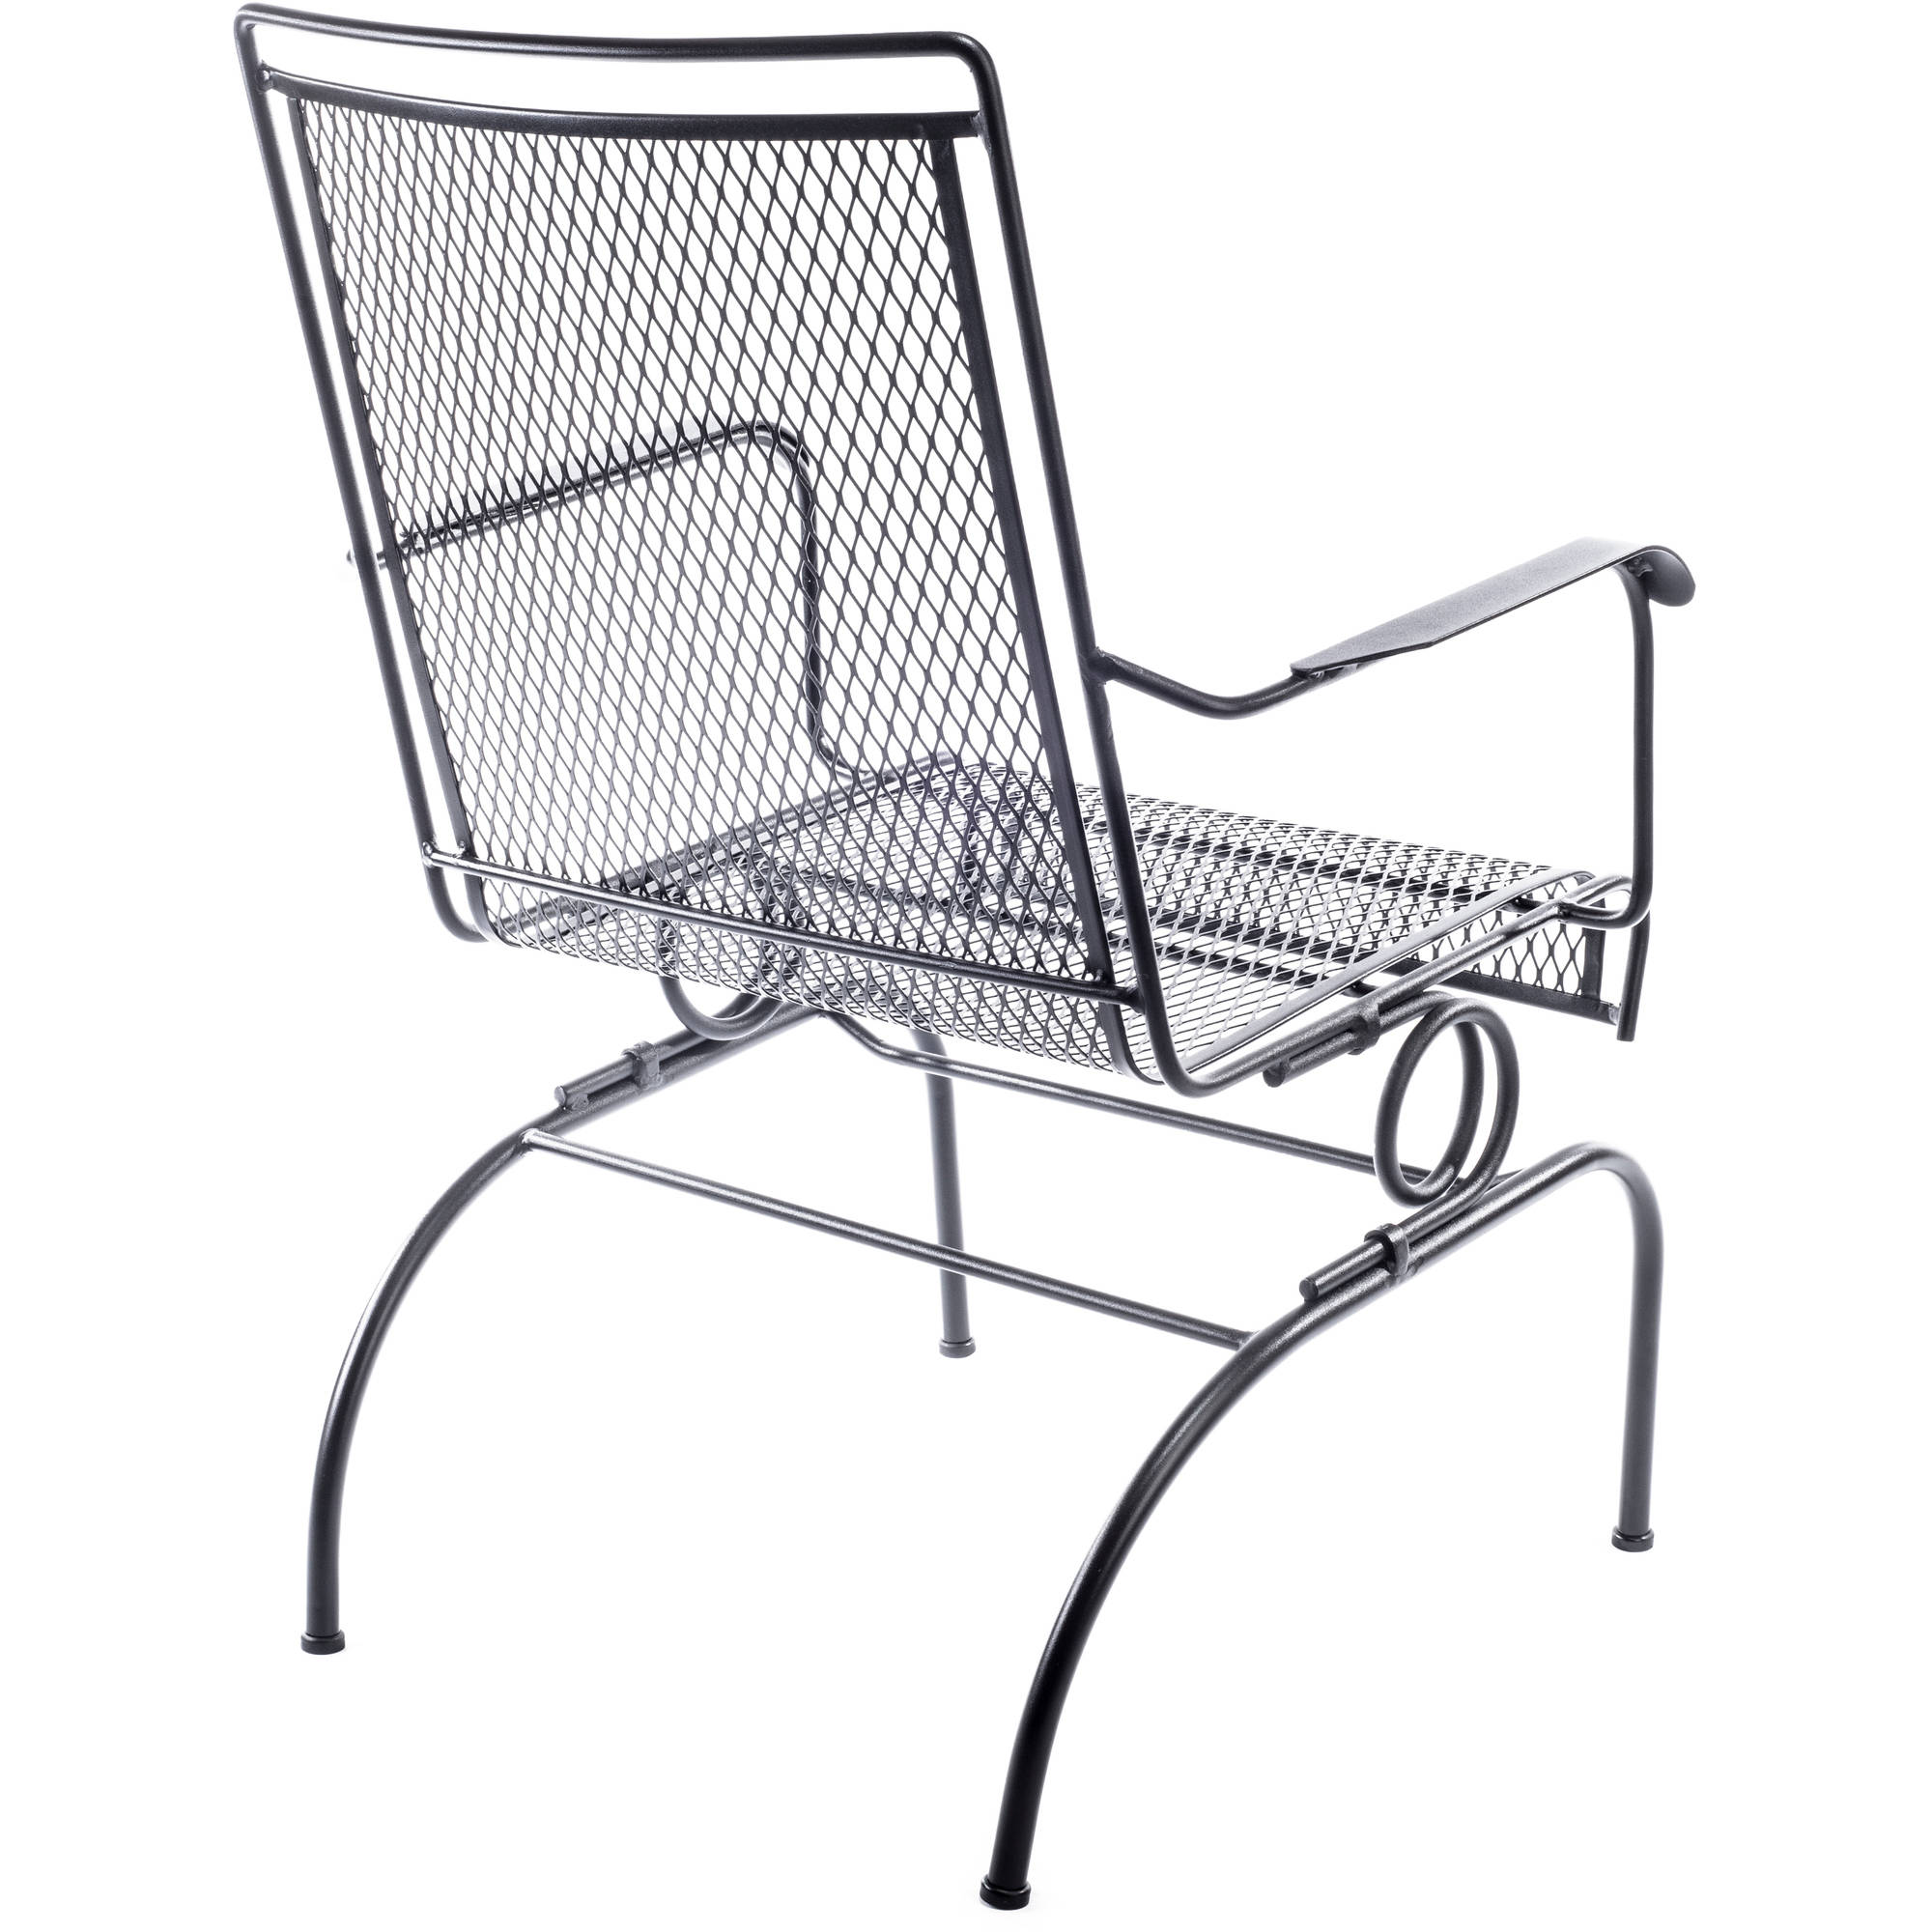 memory foam butterfly chair zero gravity target arlington house wrought iron motion chair, outdoor patio furniture - best black accent chairs